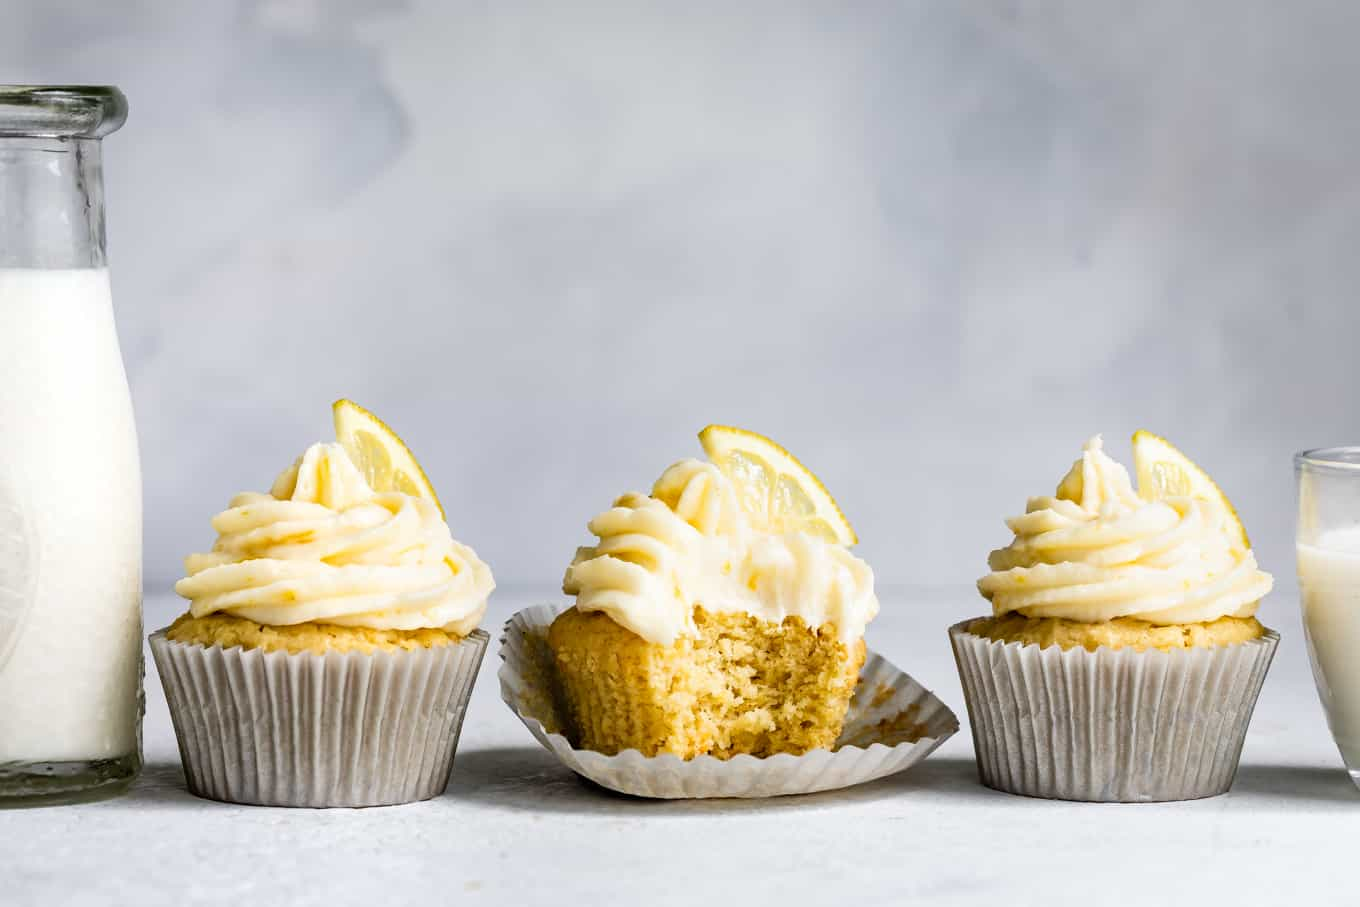 Gluten-Free Cupcake Recipe with Lemon